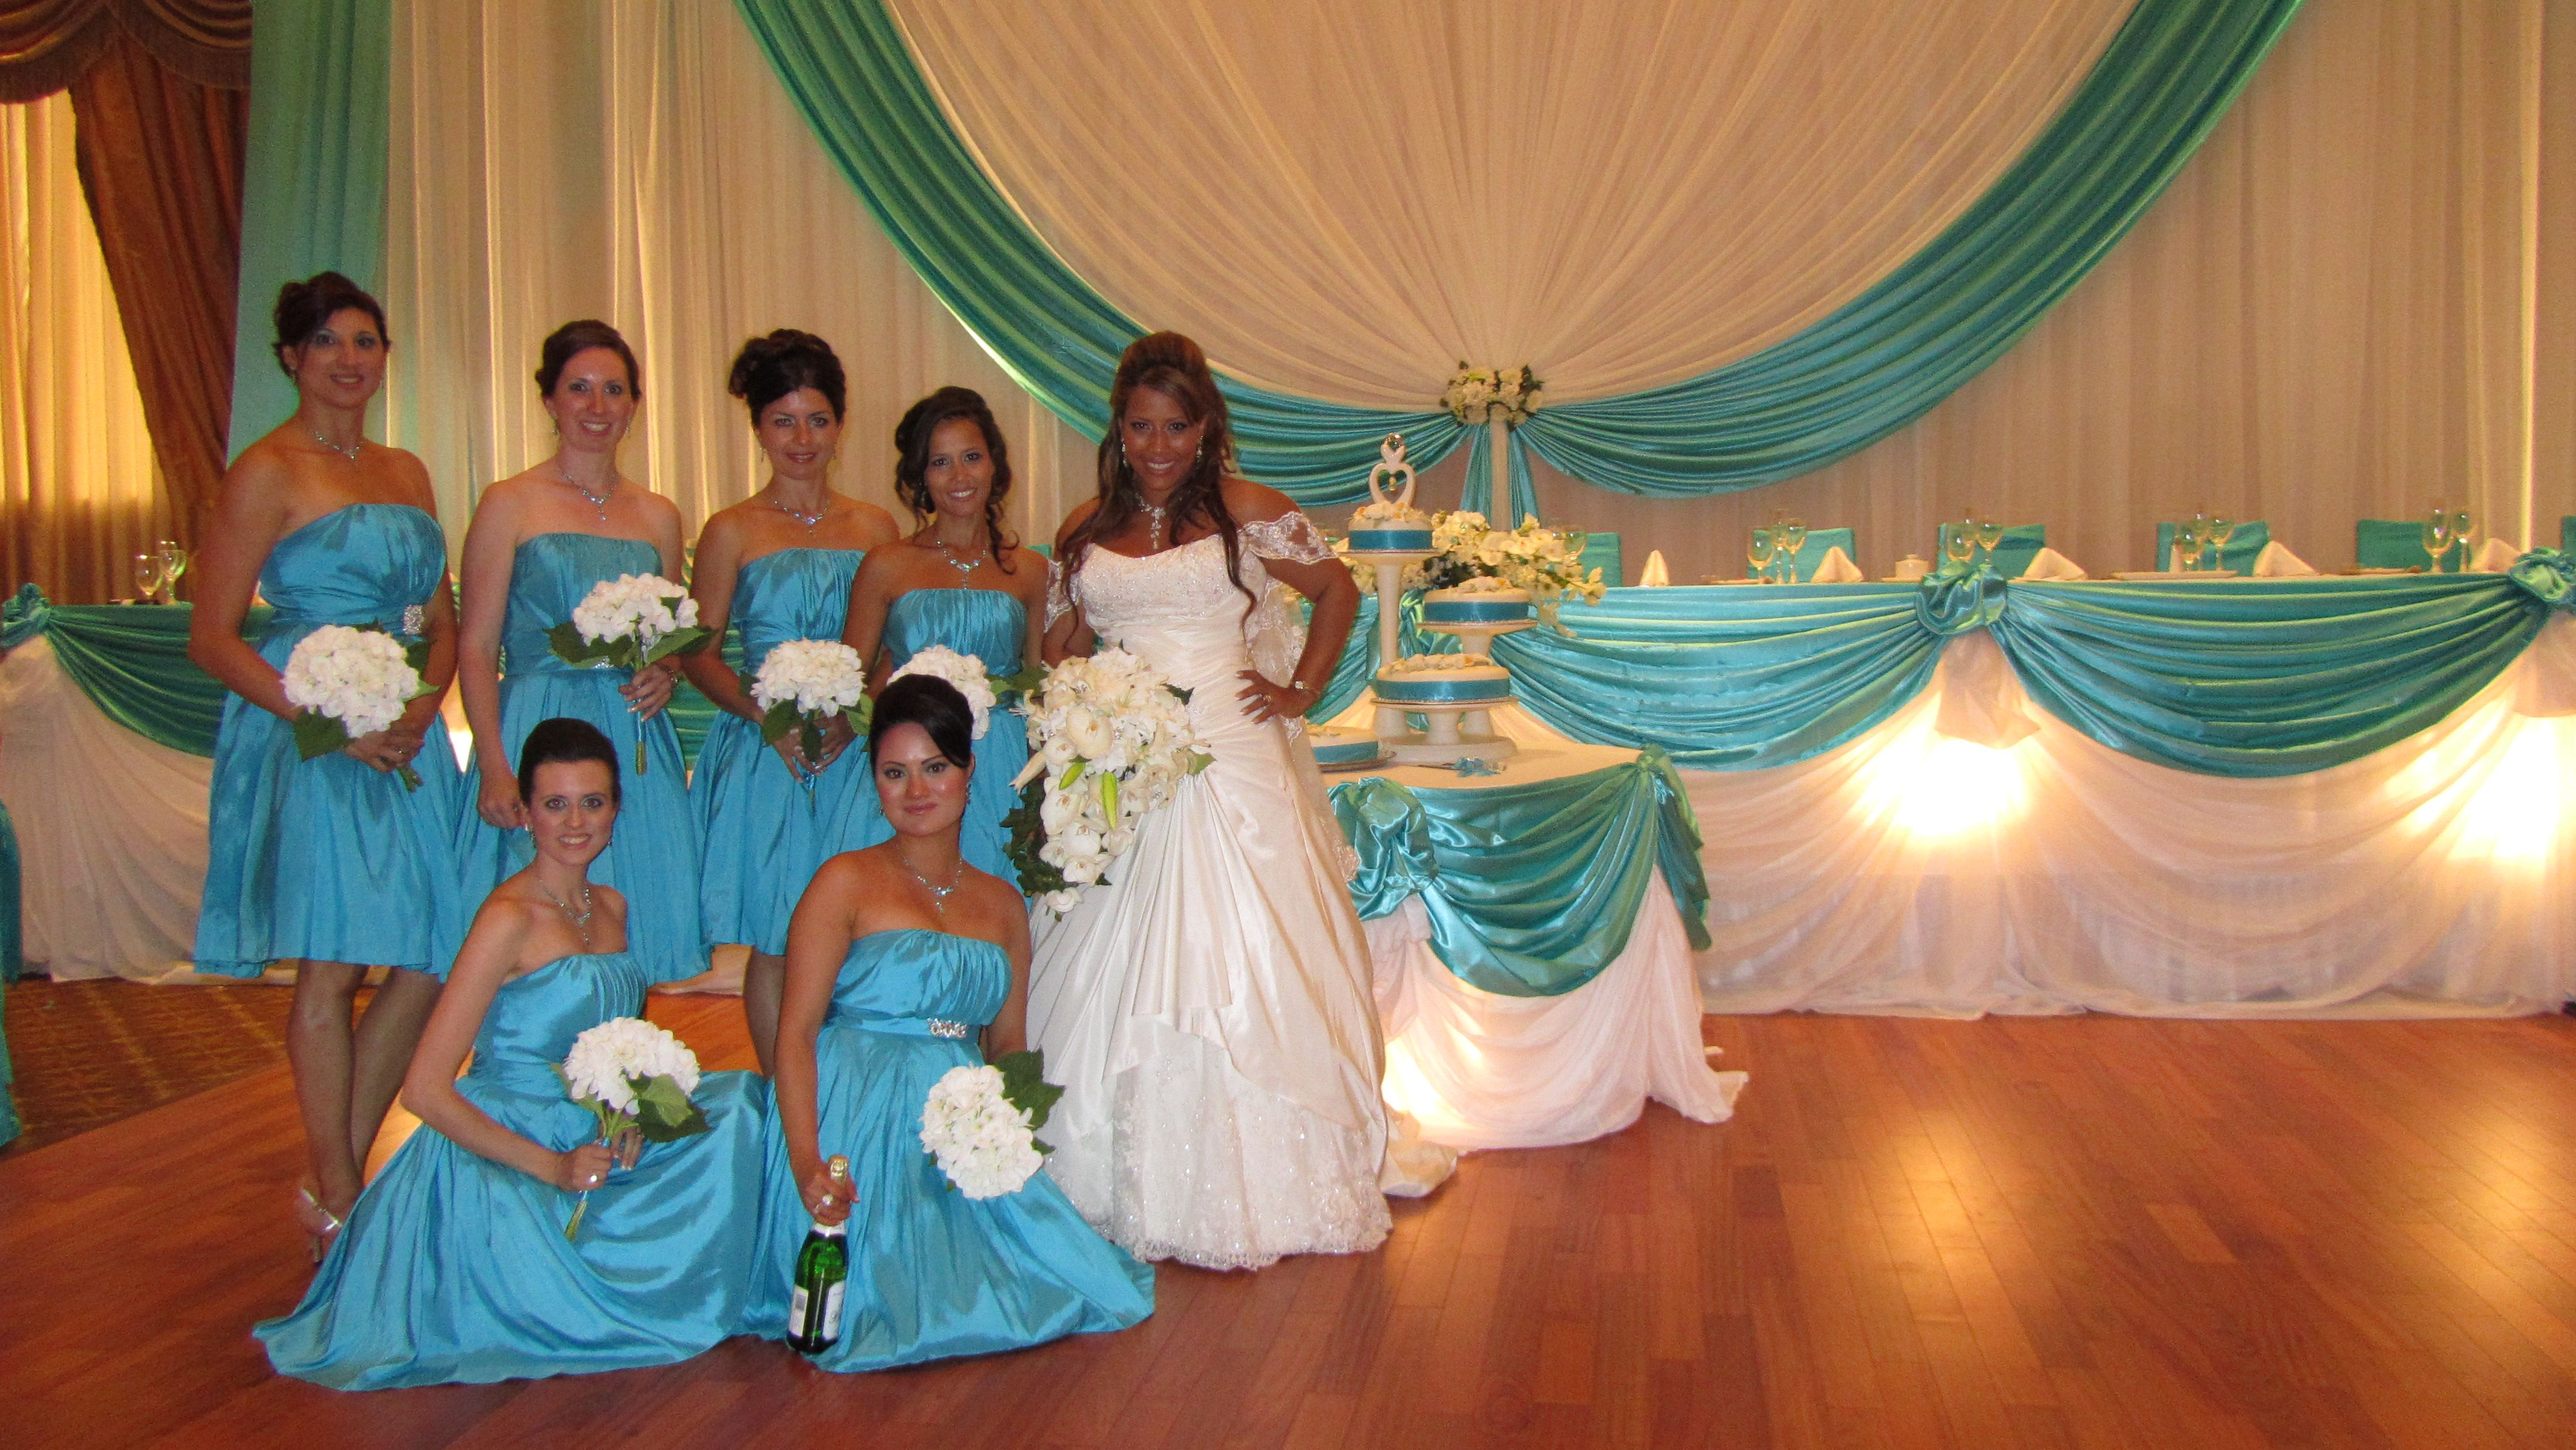 Beach party table decorations er thang  brianne wedding  pinterest  head tables backdrops and